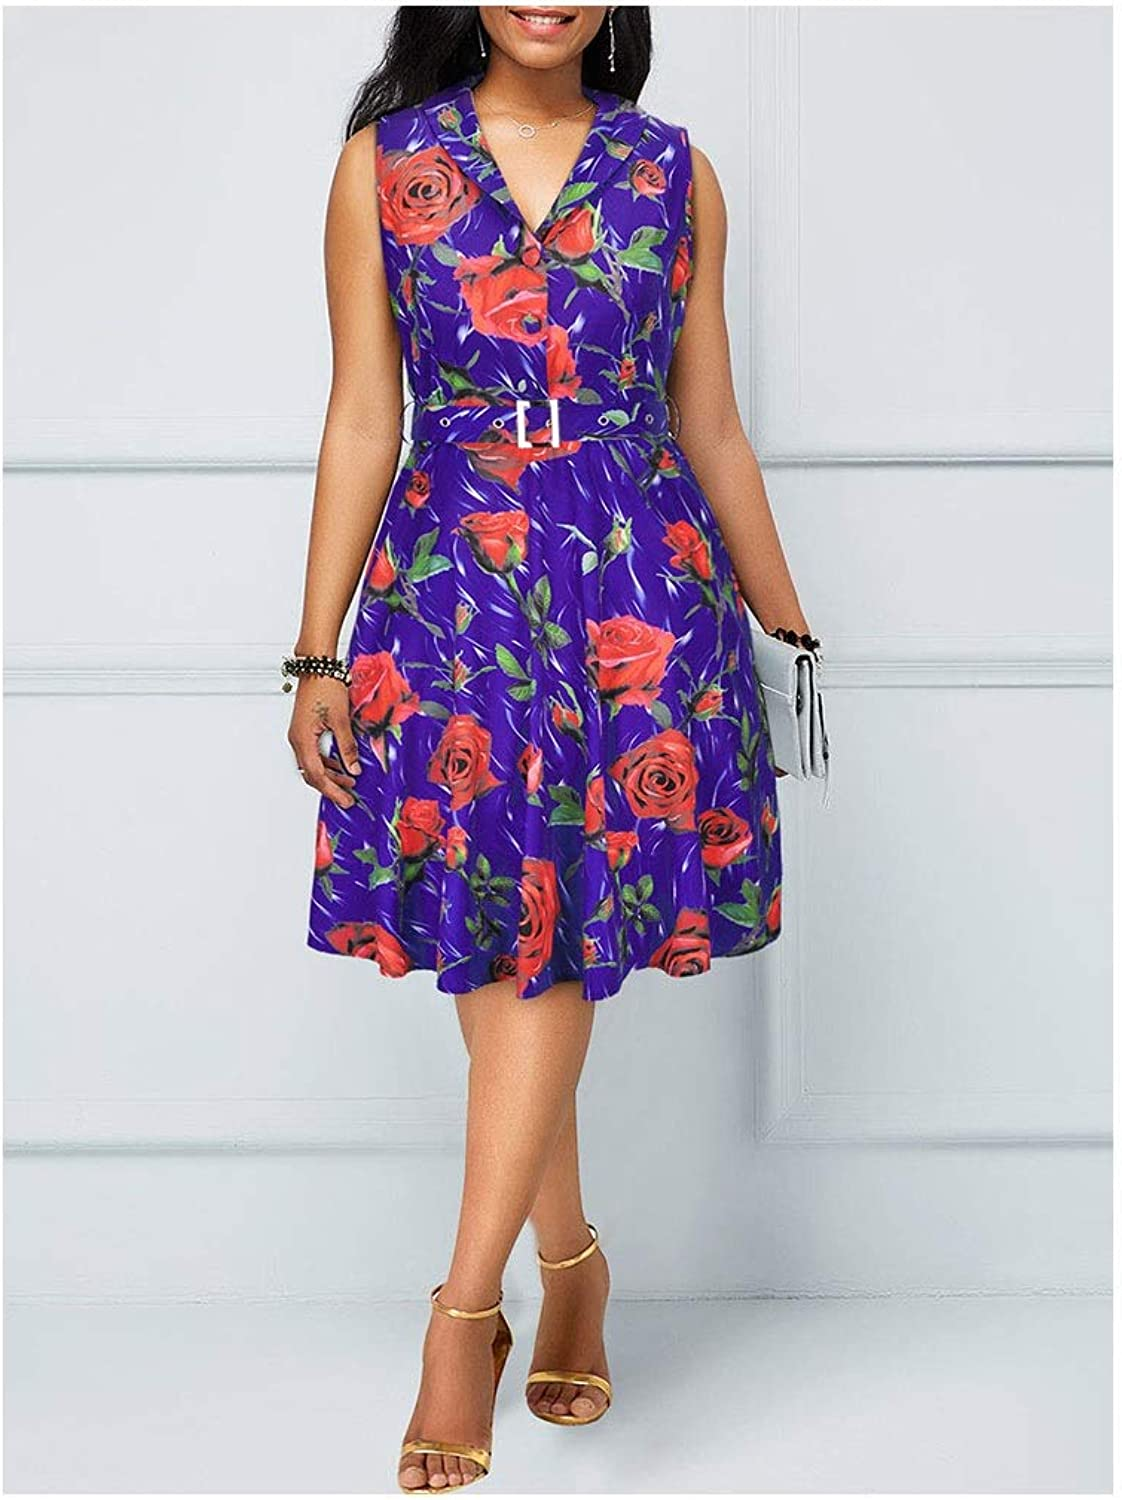 CARRY Dress, European and American Comfortable Soft Cocktail Dress Sleeveless Printed VNeck Dress (color   color1, Size   M)